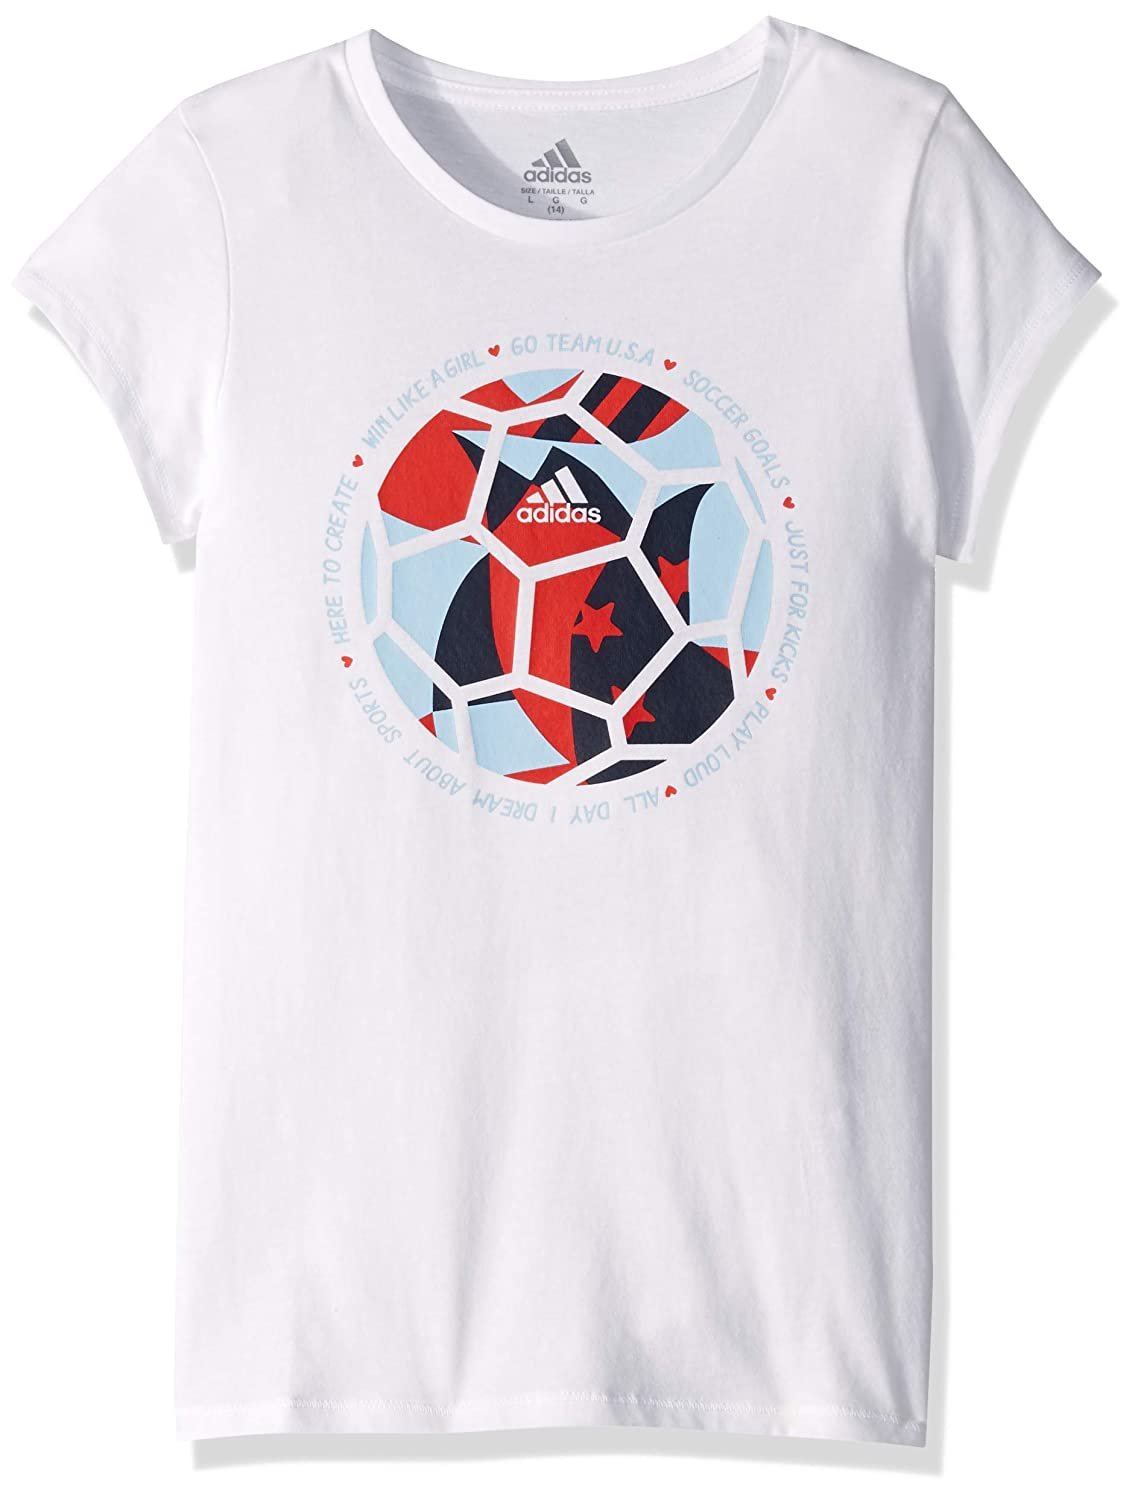 7c615dcc Amazon.com: adidas Girl Toddler Short Sleeve Graphic Tee T-Shirt, Vented  White/red, 2T: Clothing